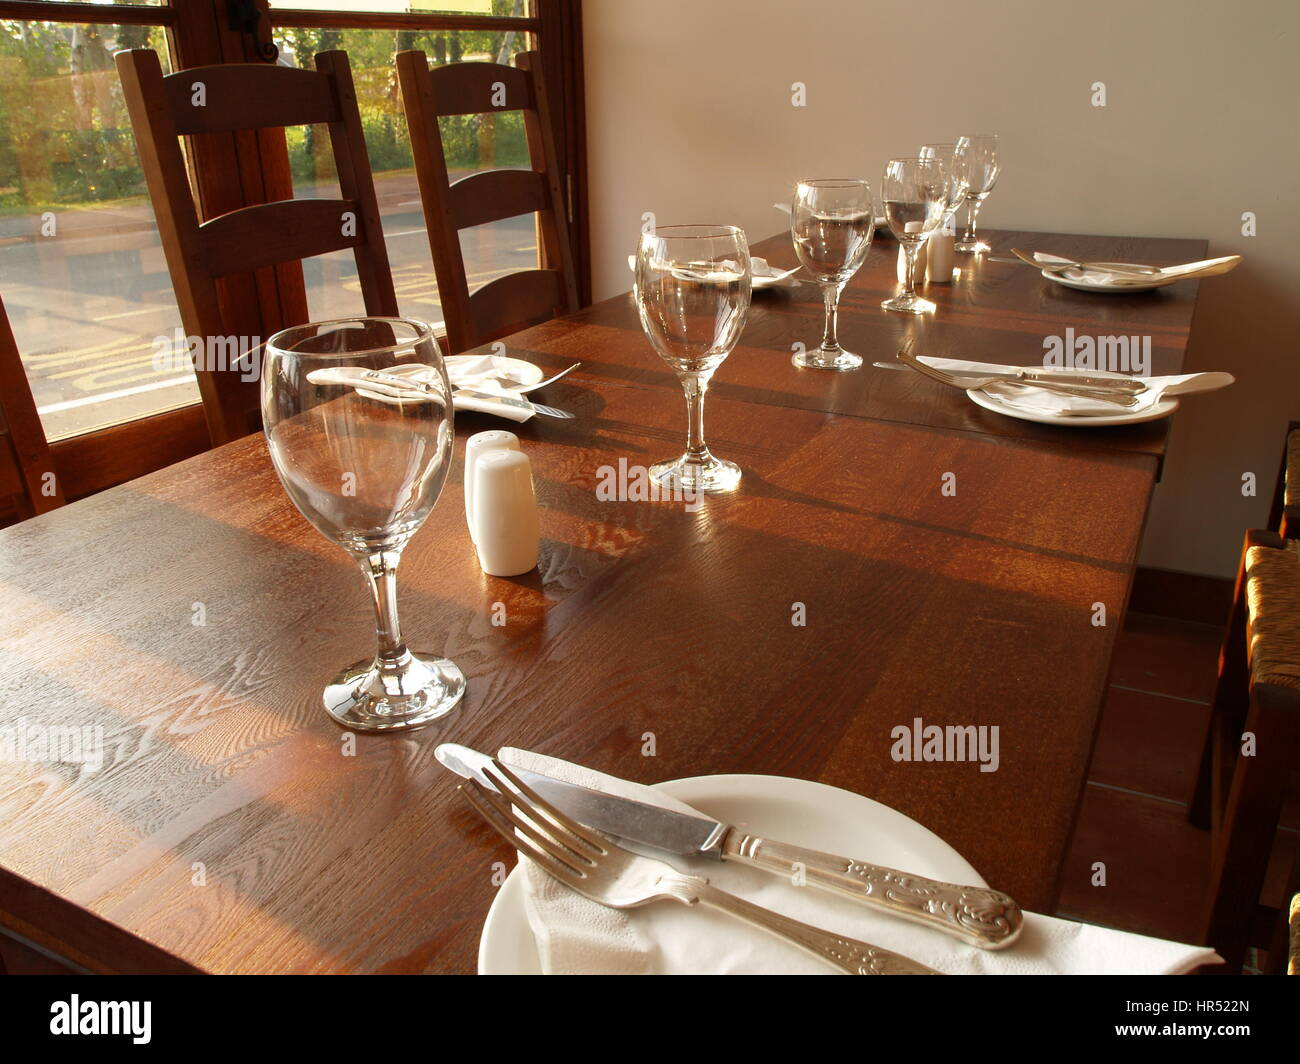 Table setting in a restaurant with wine glasses and side plates on a wooden table & Table setting in a restaurant with wine glasses and side plates on a ...